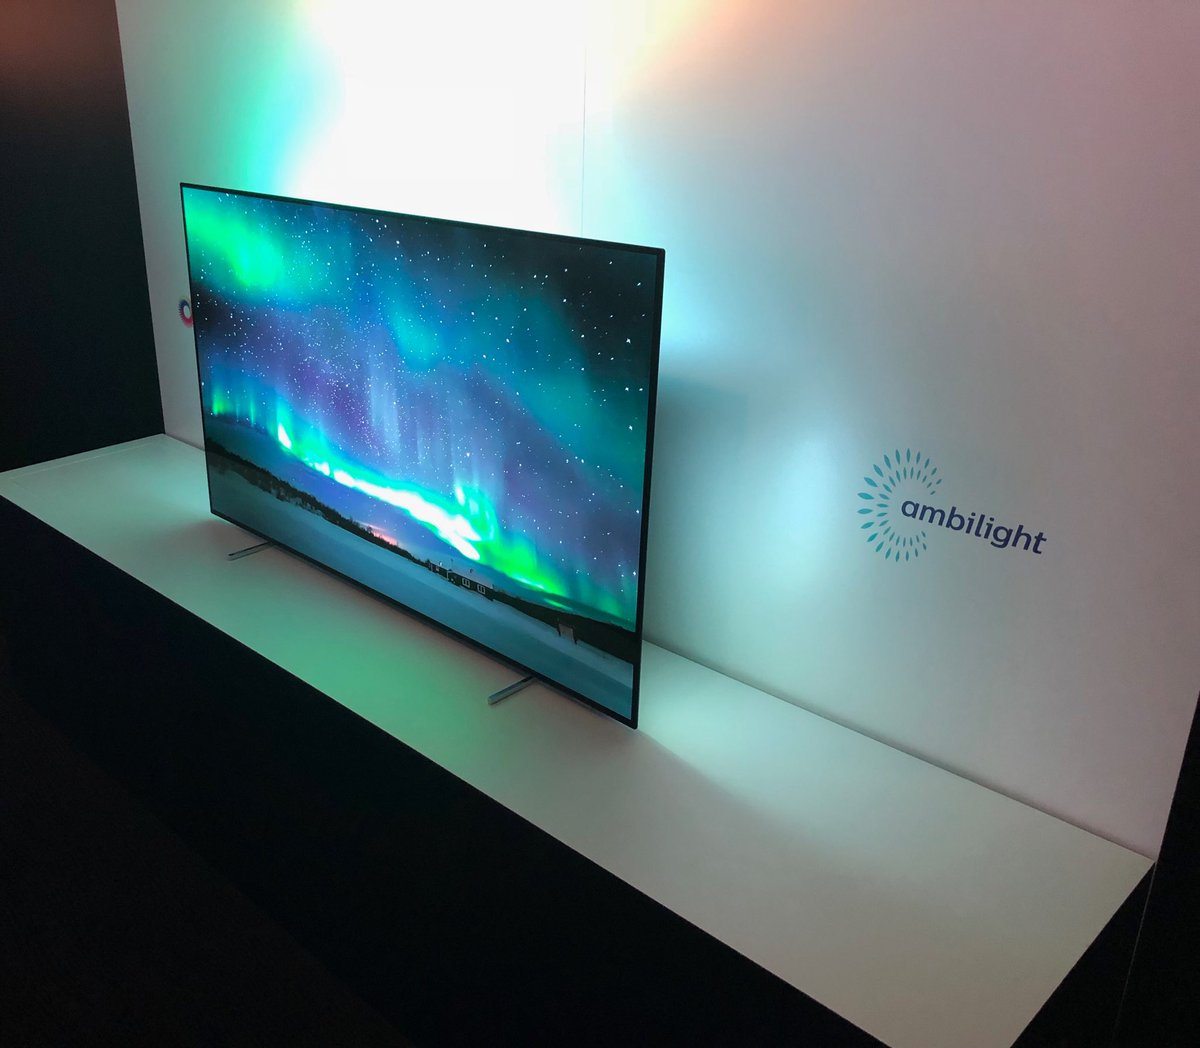 Philips 803 Oled Tv 55oled803 Review Ambilight And Multiple Delights Gearopen